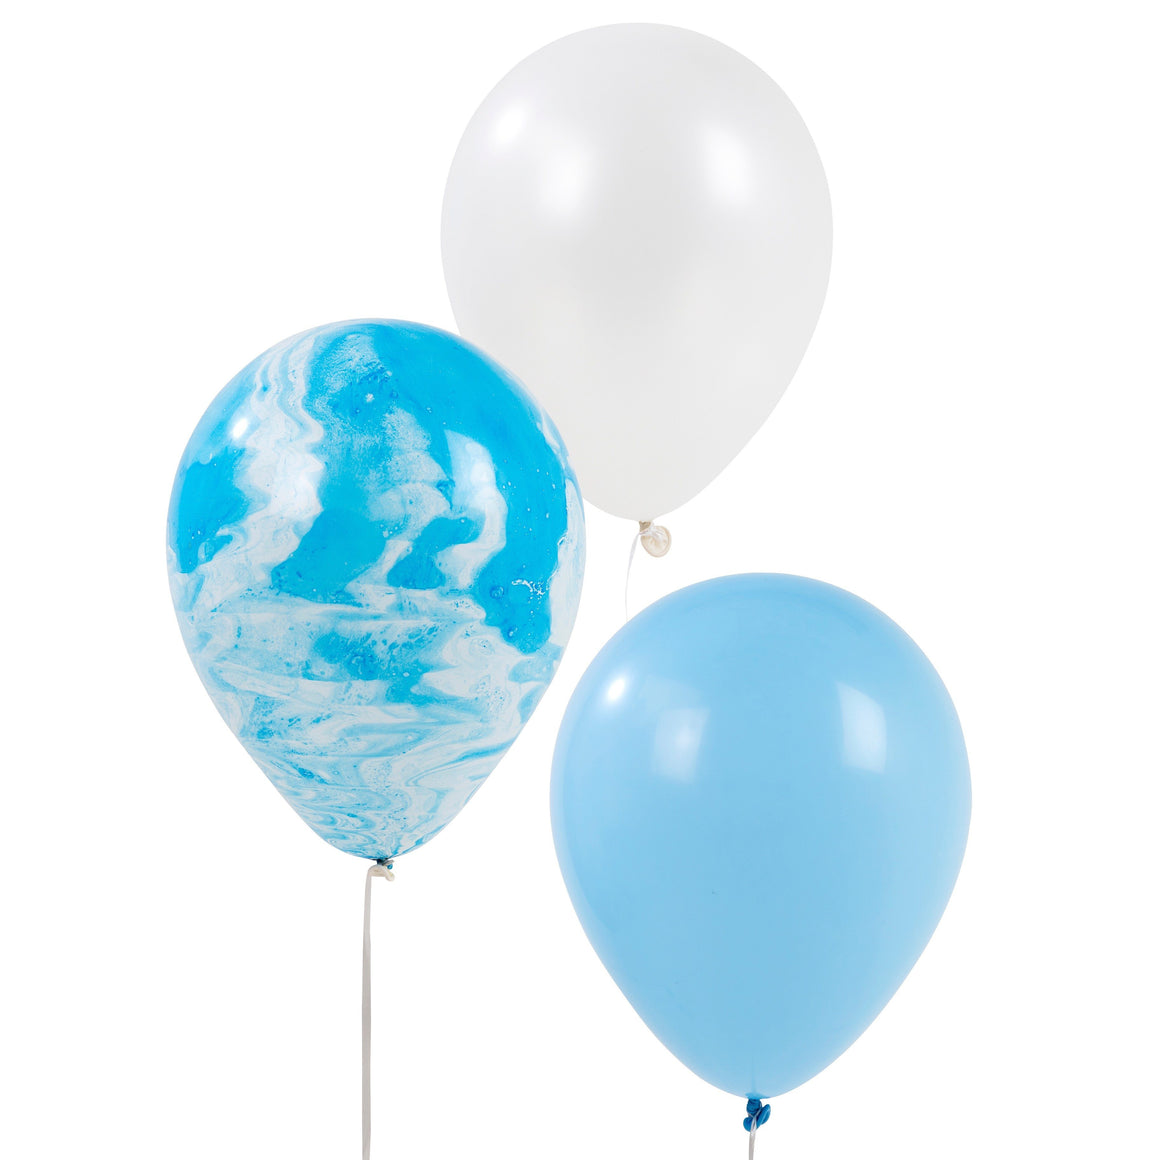 BALLOONS - MARBLE KIT BLUE, Balloons, TALKING TABLES - Bon + Co. Party Studio